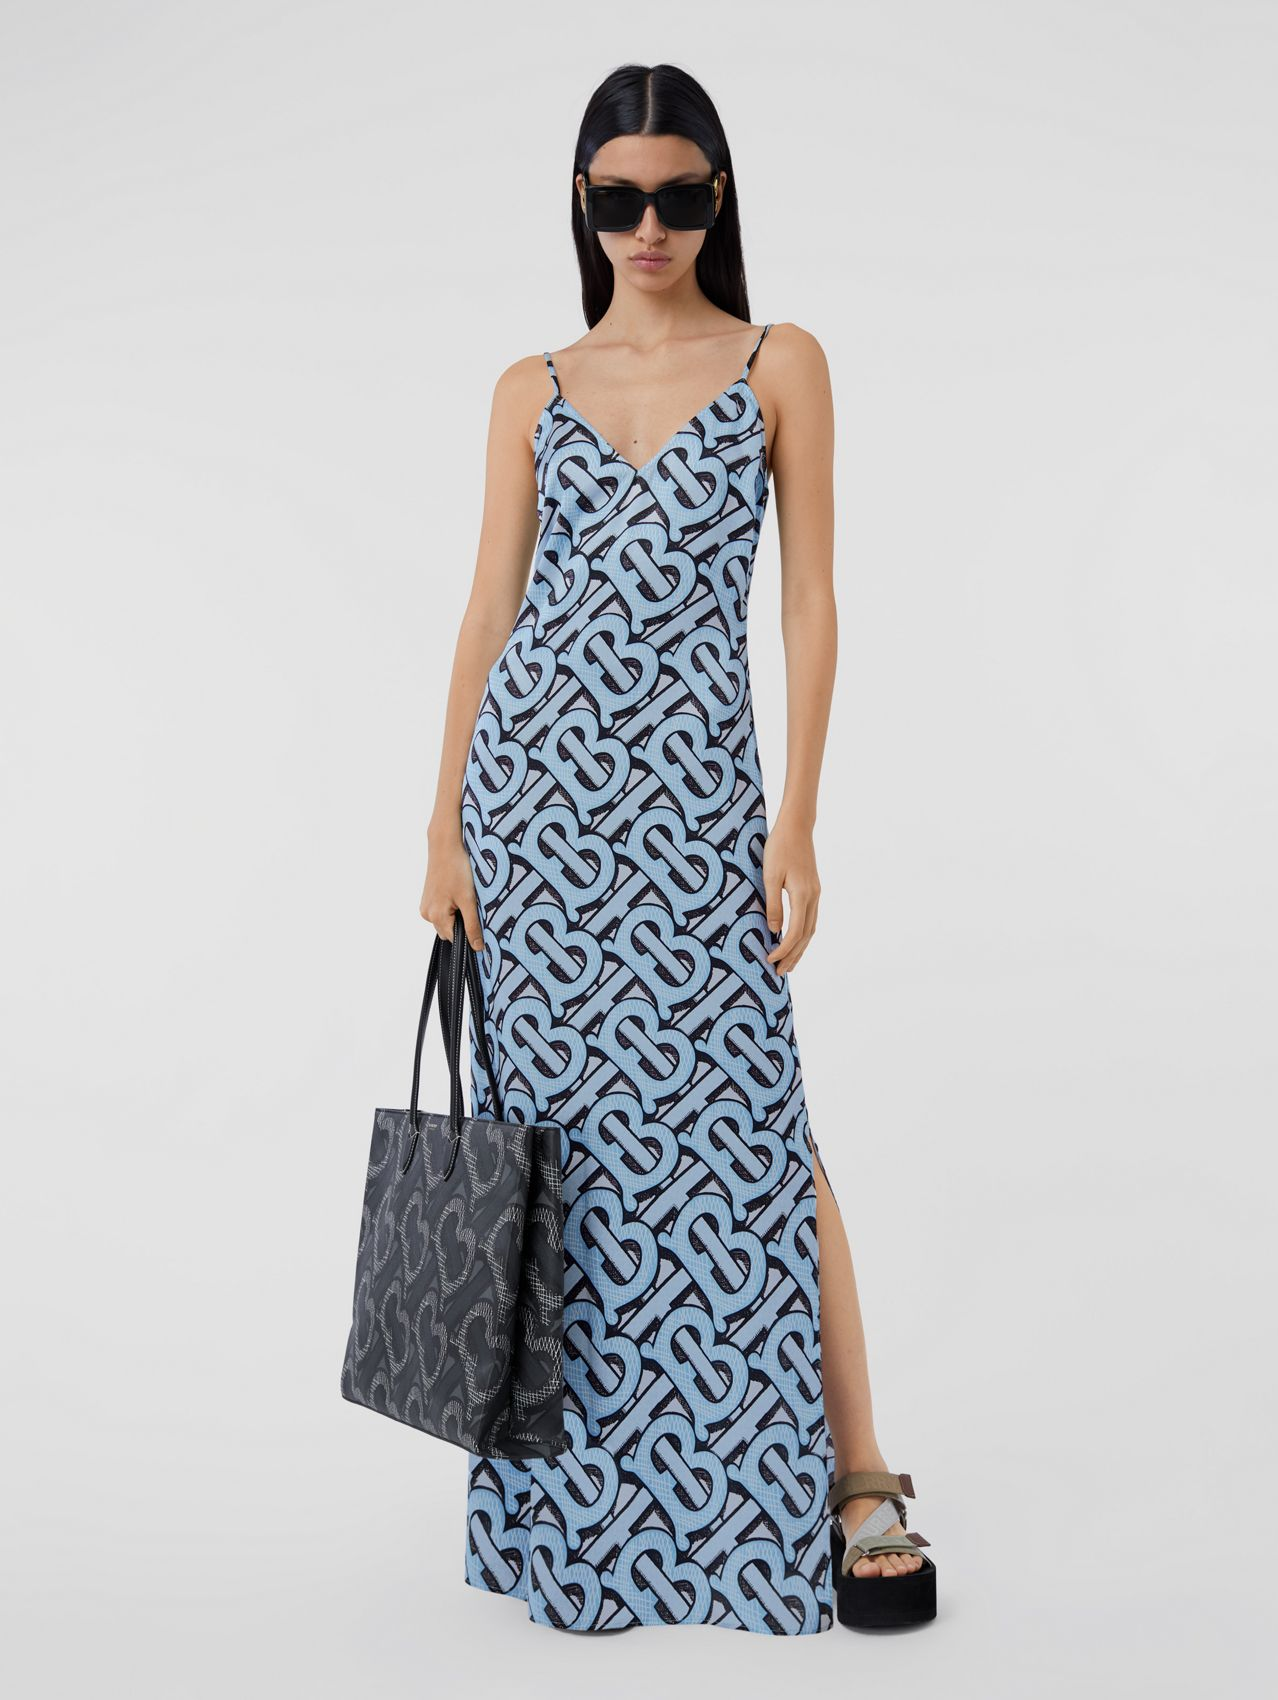 Monogram Print Silk Satin Slip Dress in Pale Azure